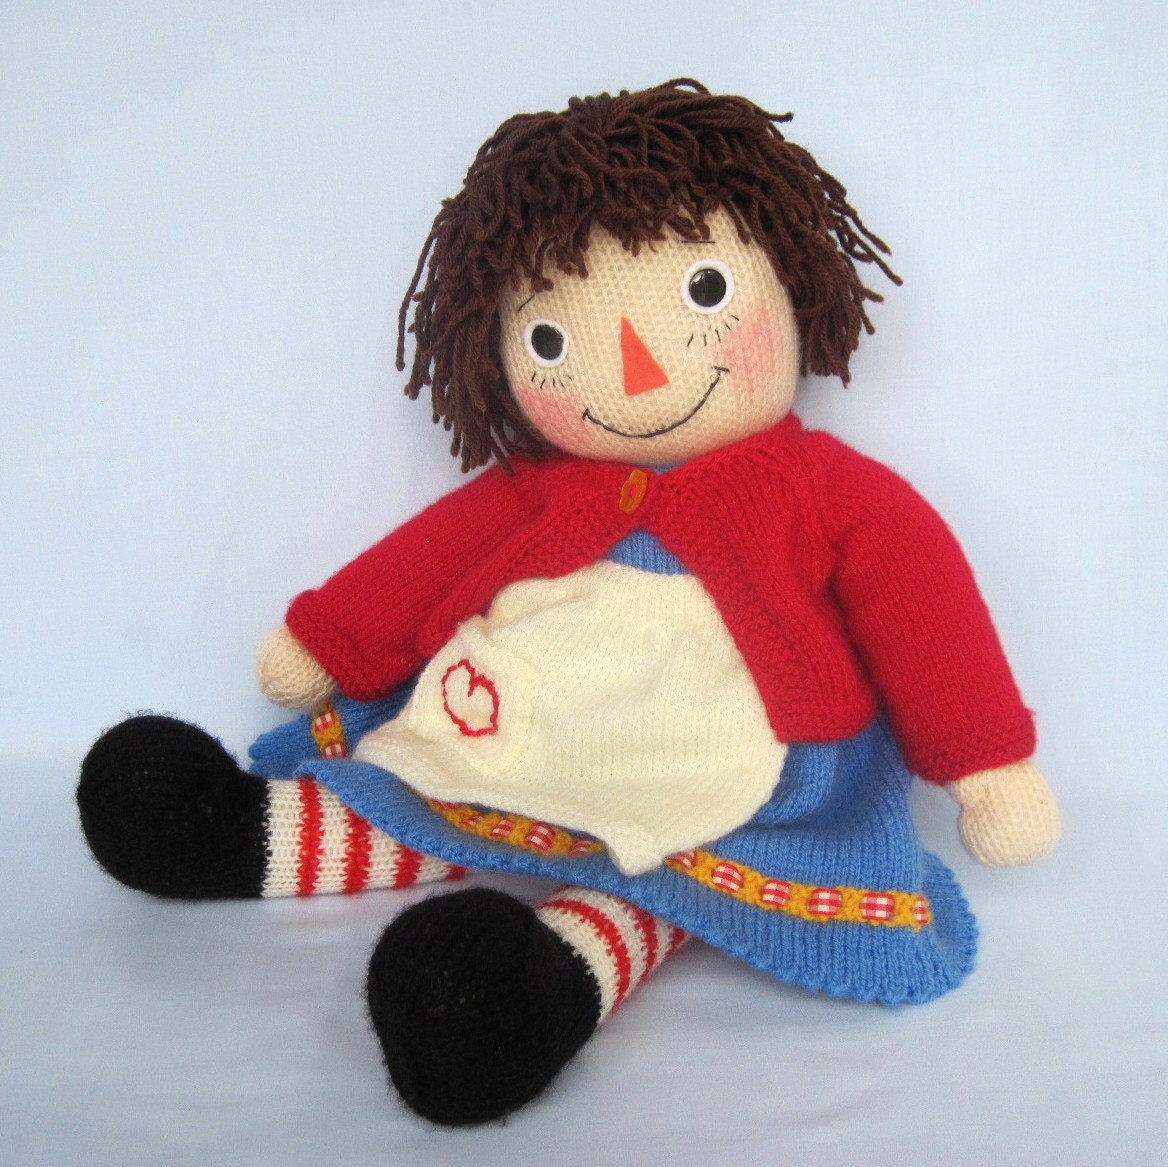 Knitting Doll Pattern : Knitted doll pattern merrily ann raggedy style email